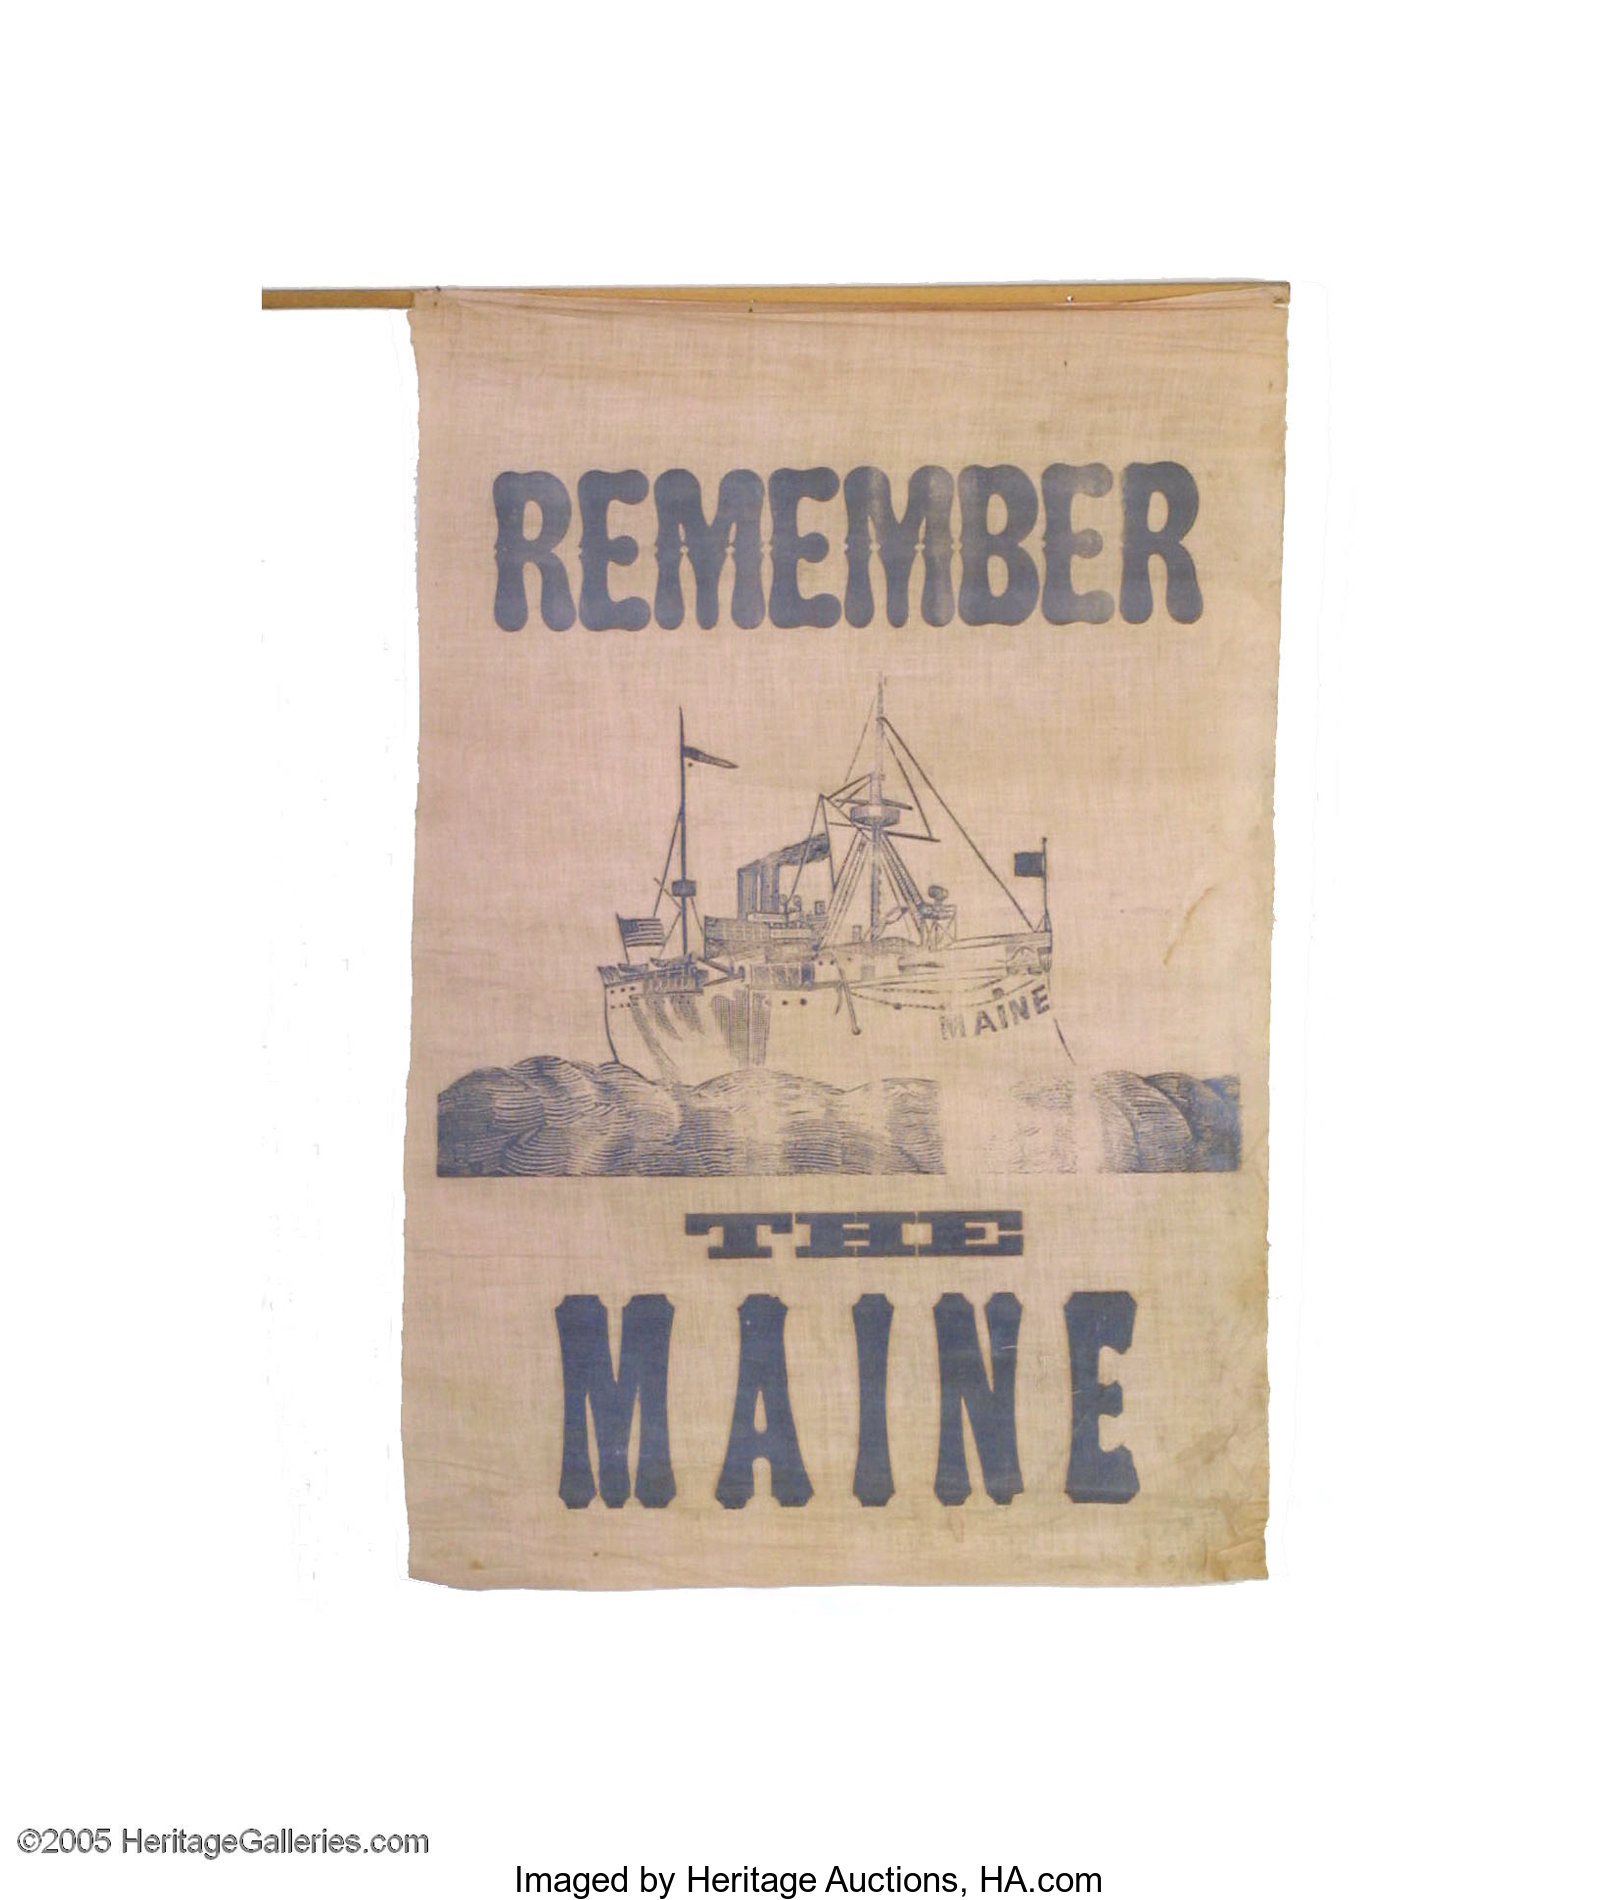 remember the maine was the rally cry for which war